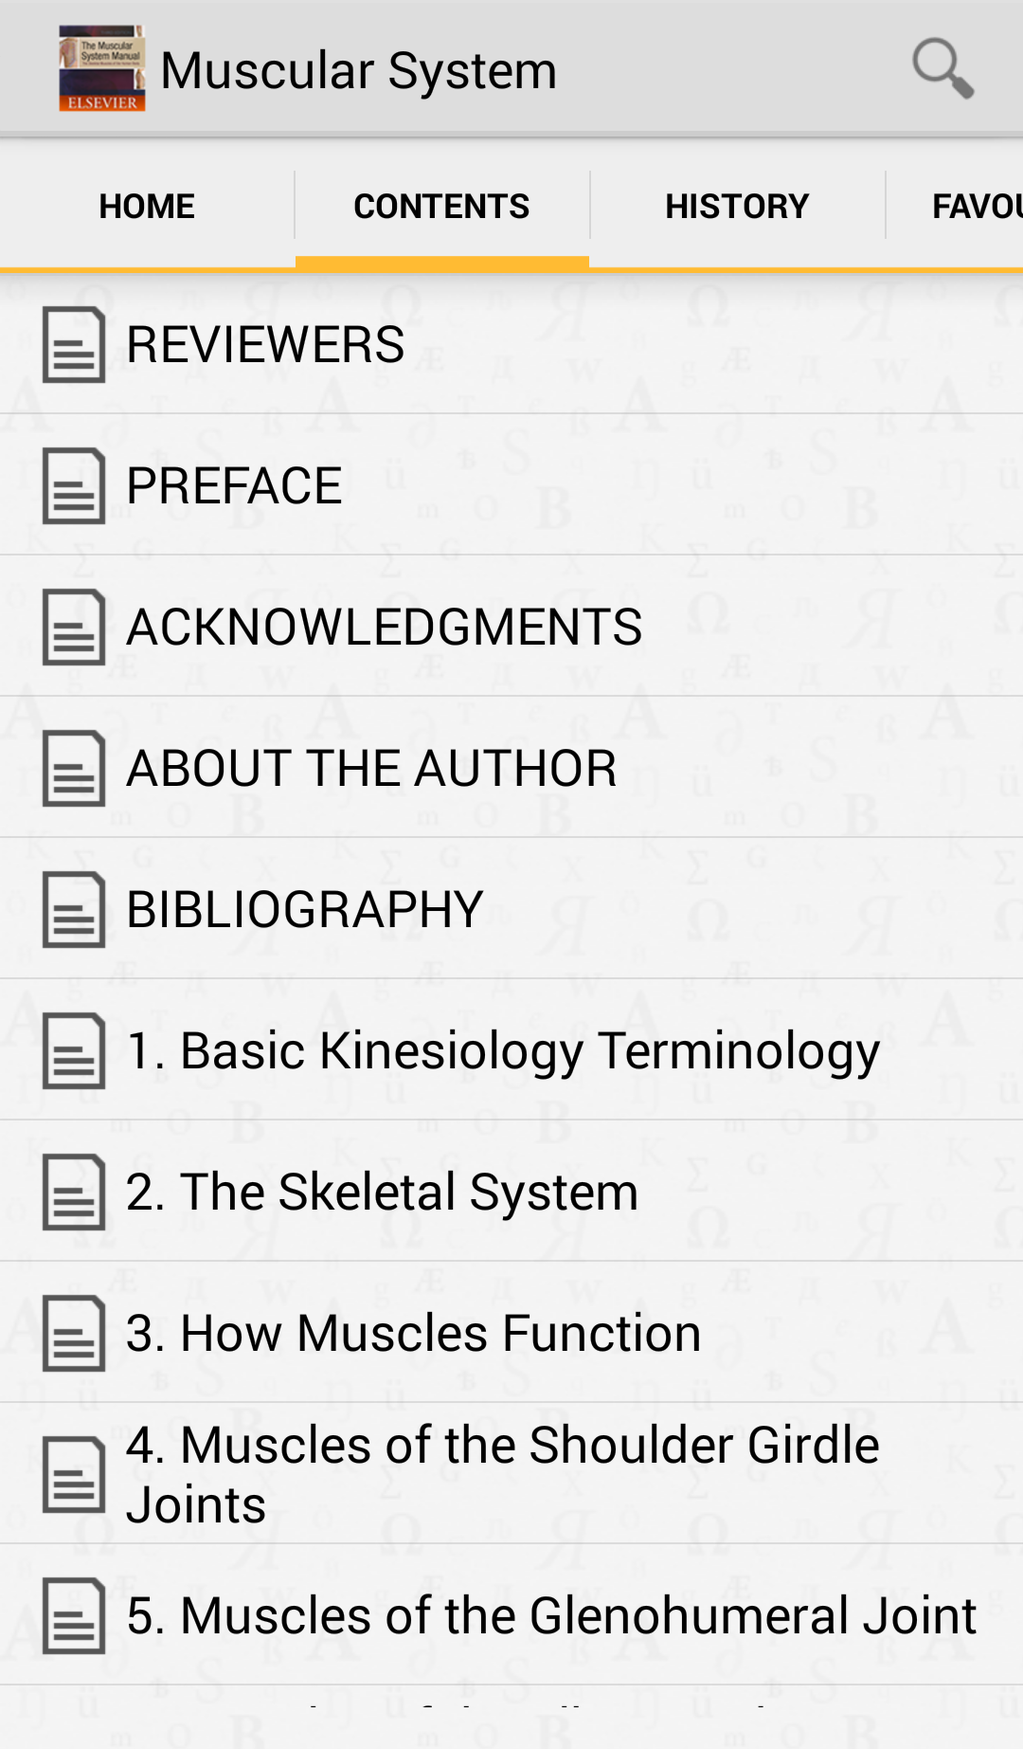 The Muscular System Manual: The Skeletal Muscles of the Human Body Screenshot 4